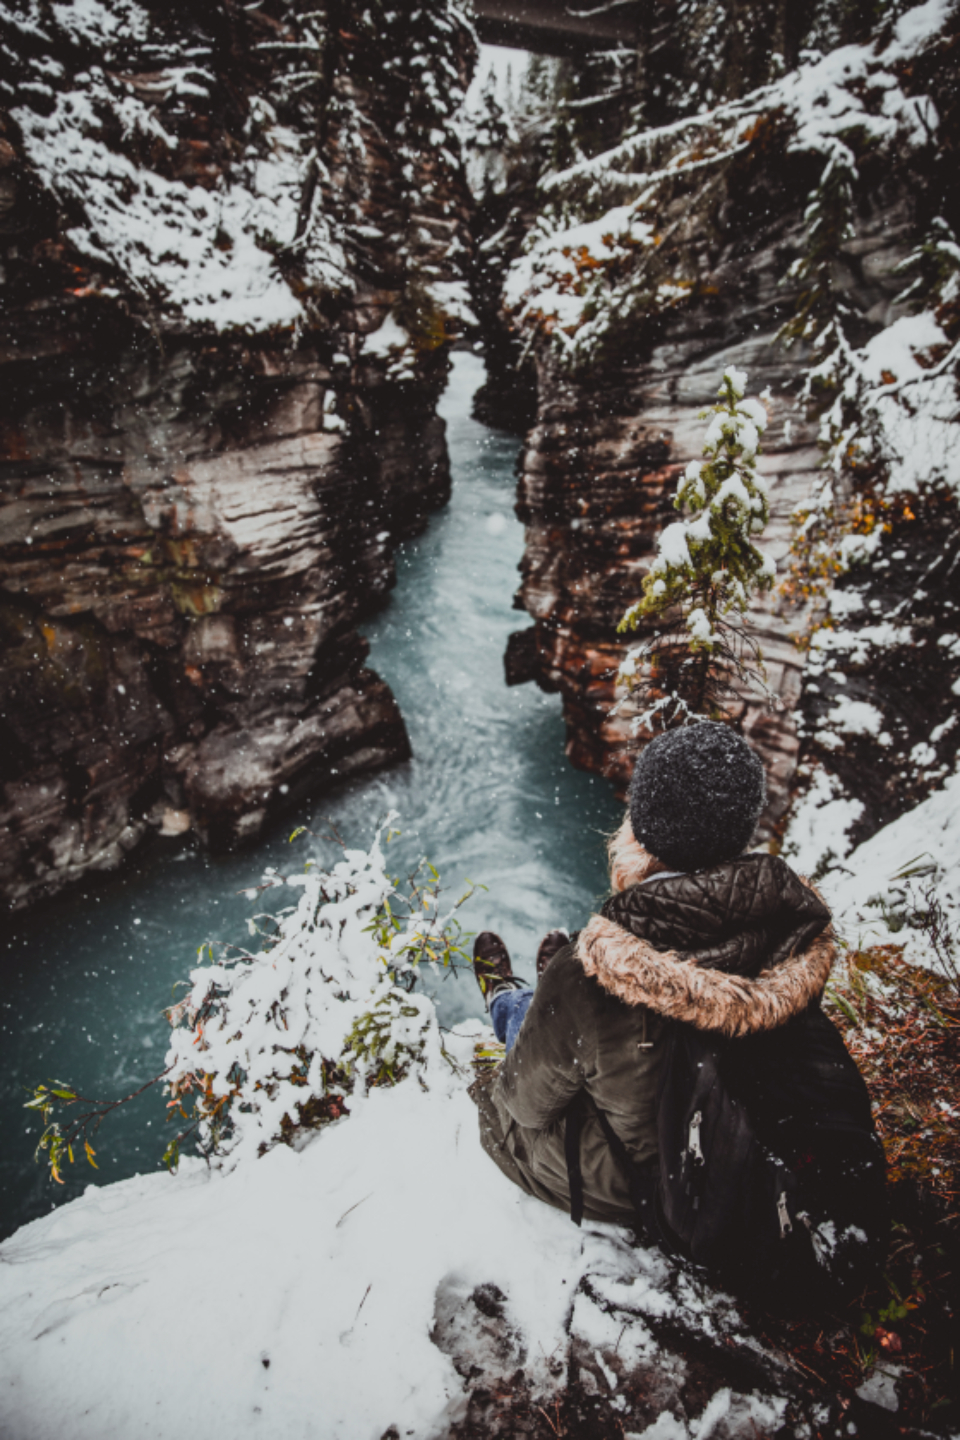 canyon water Johnston Canyon alberta winter snow explore exploring snowing cold girl woman coat